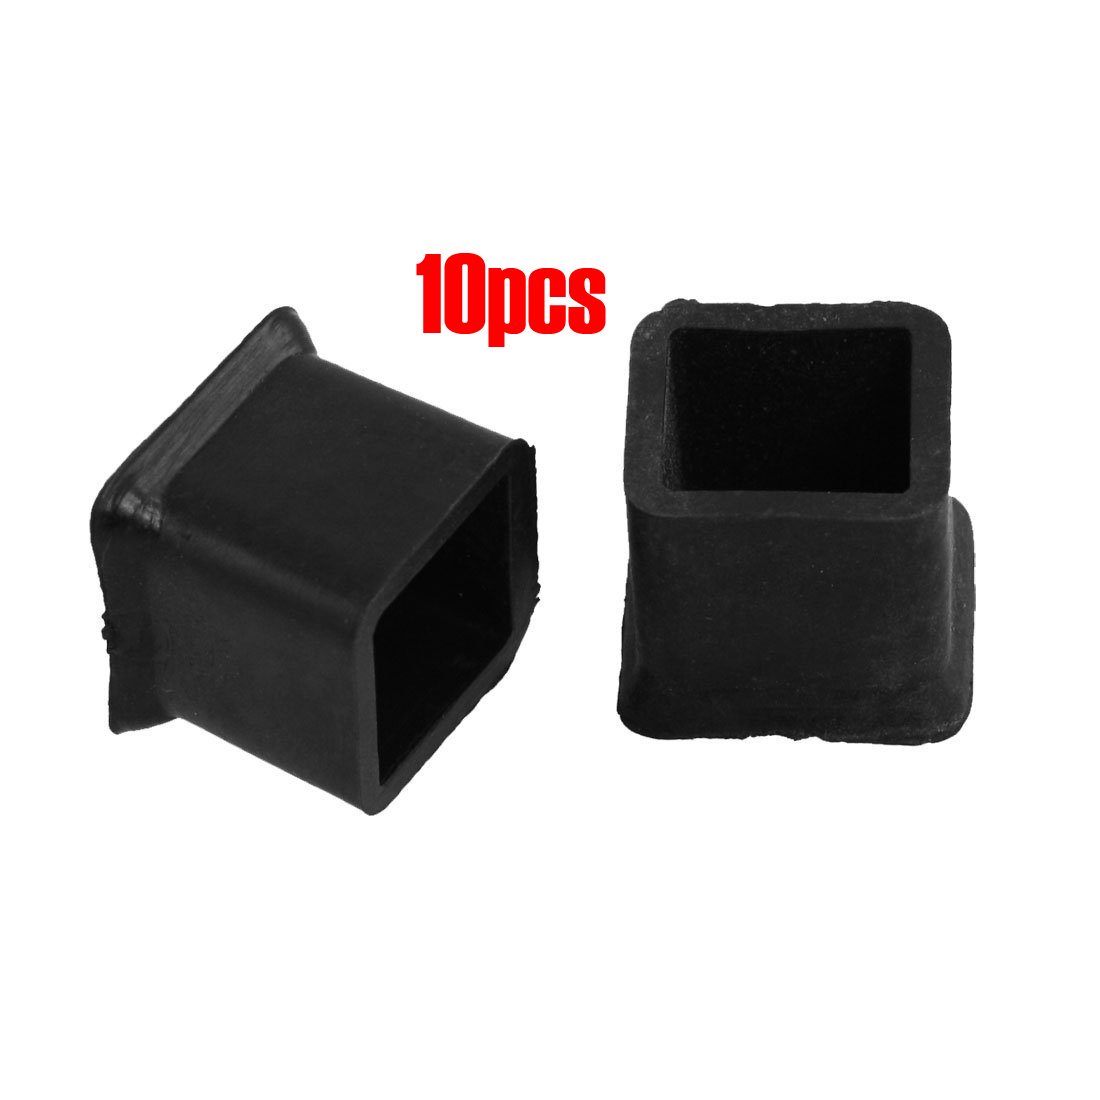 NOCM New 10Pcs Furniture Chair Table Leg Rubber Foot Covers Protectors 20mm X 20mm Free Shipping